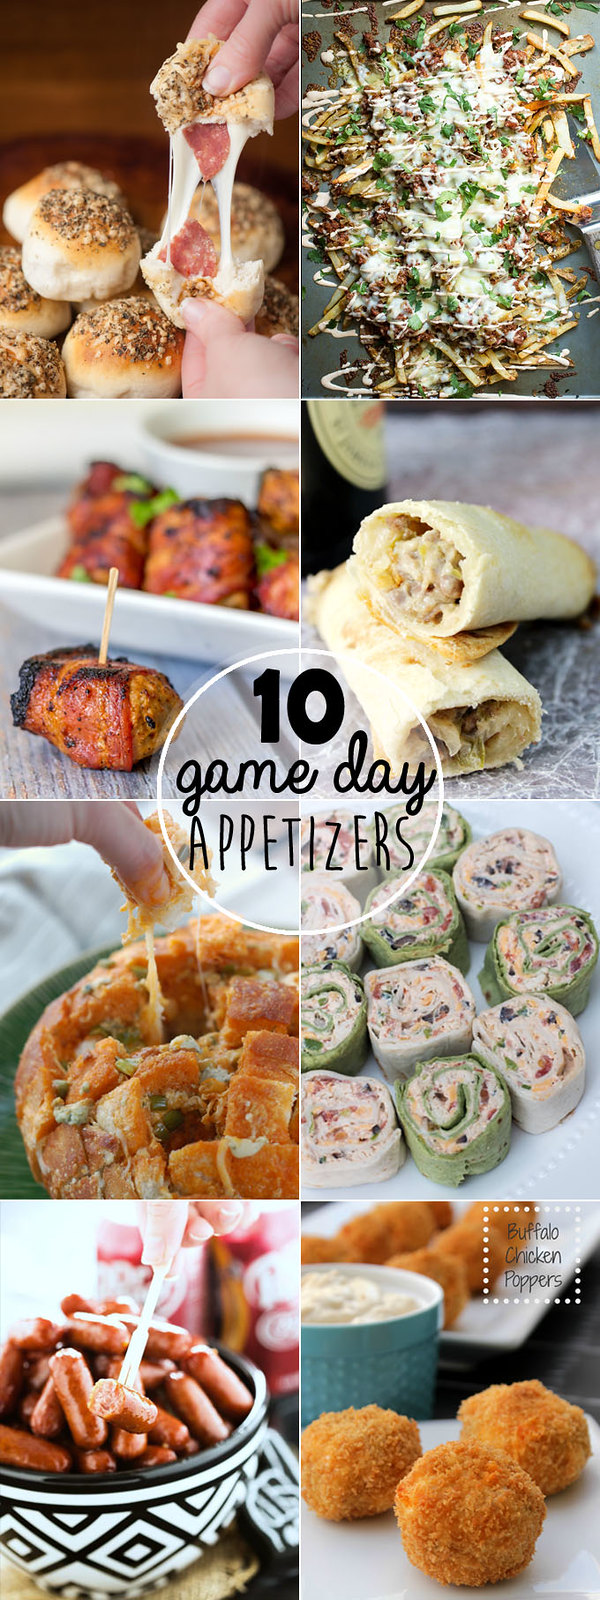 Ten game day recipes that will help you get your grub on! Grab yourself a cold one and let's eat!!